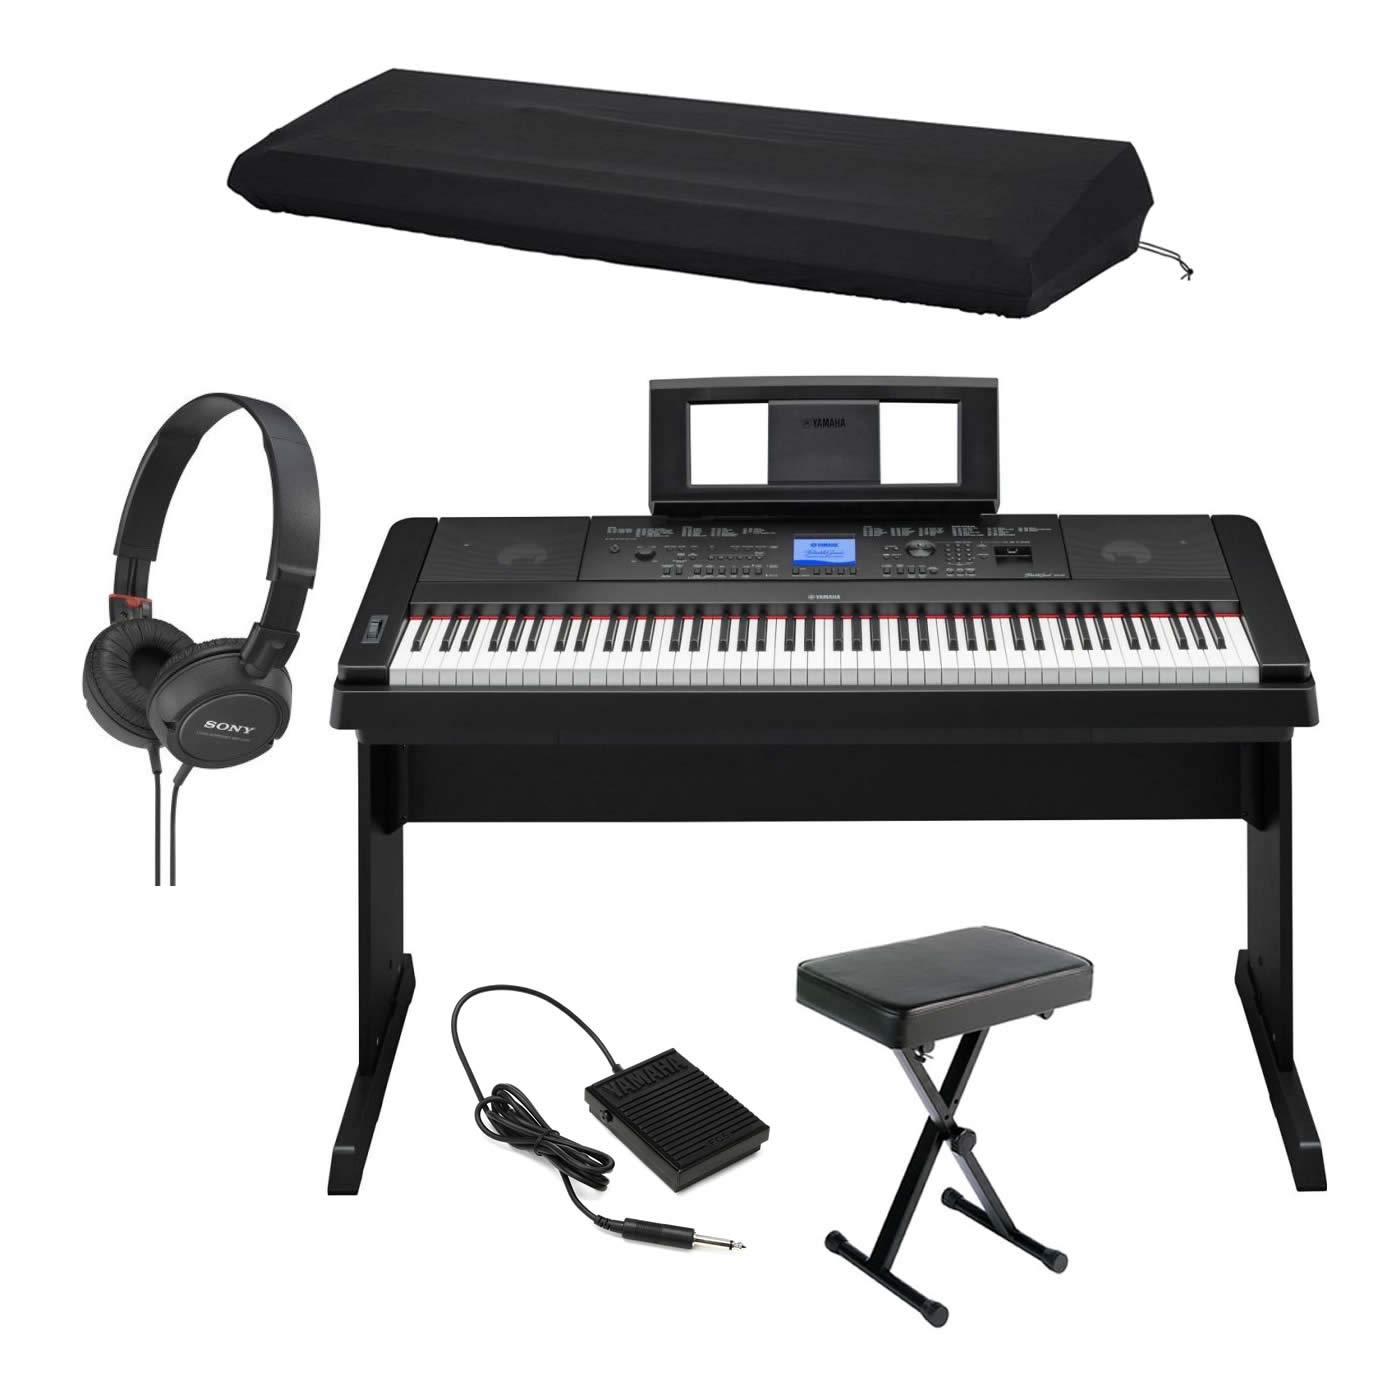 Yamaha DGX660B 88-Key Ensemble Digital Piano with Furniture Stand, Padded X-Style Piano Bench, Power Adapter, Footswitch, Dust Cover, and On-Ear Stereo Headphones by Yamaha-Genesis